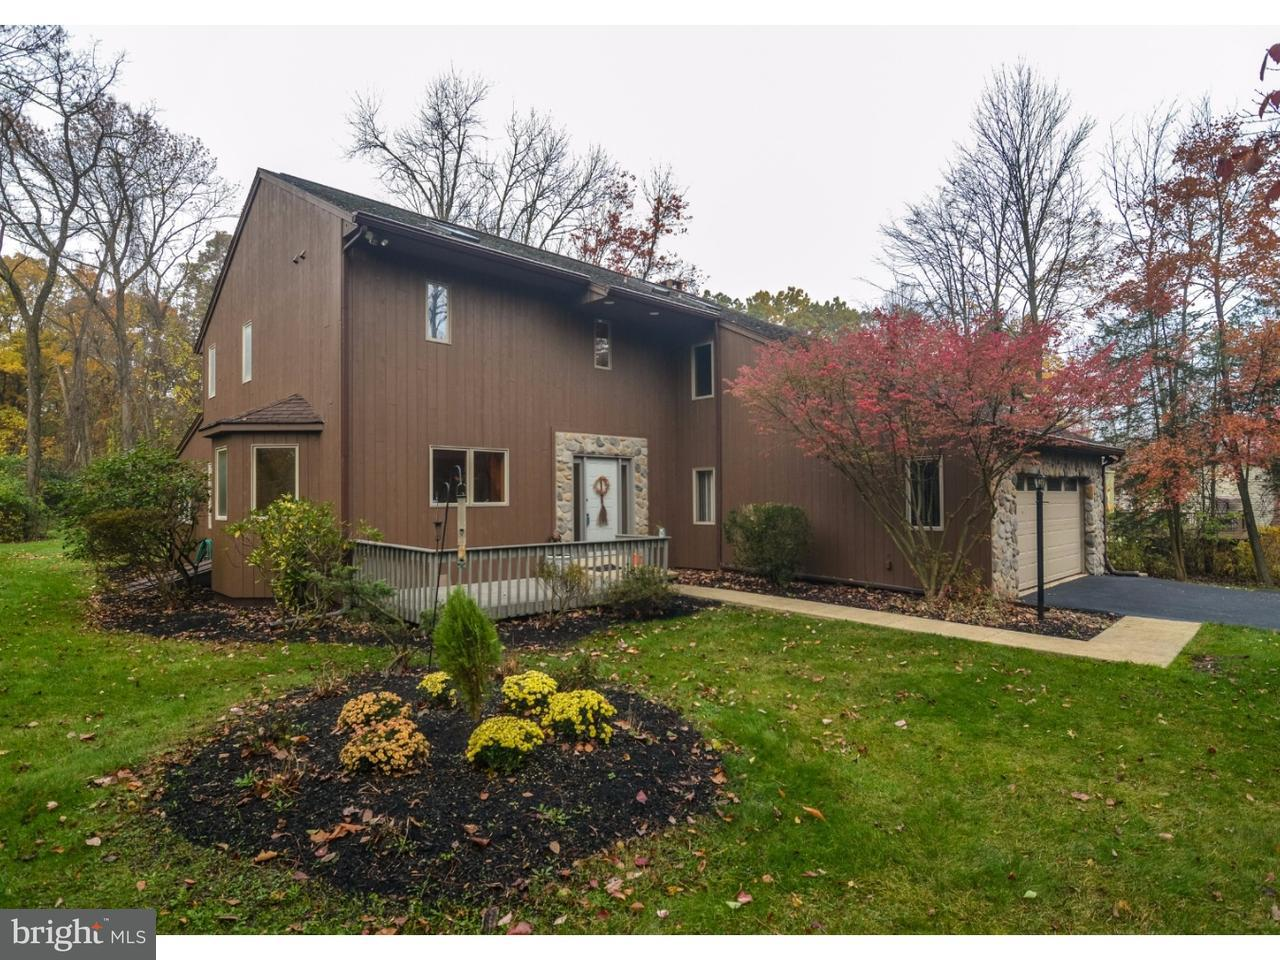 Single Family Home for Sale at 44 CEPP Road Perkiomenville, Pennsylvania 18074 United States